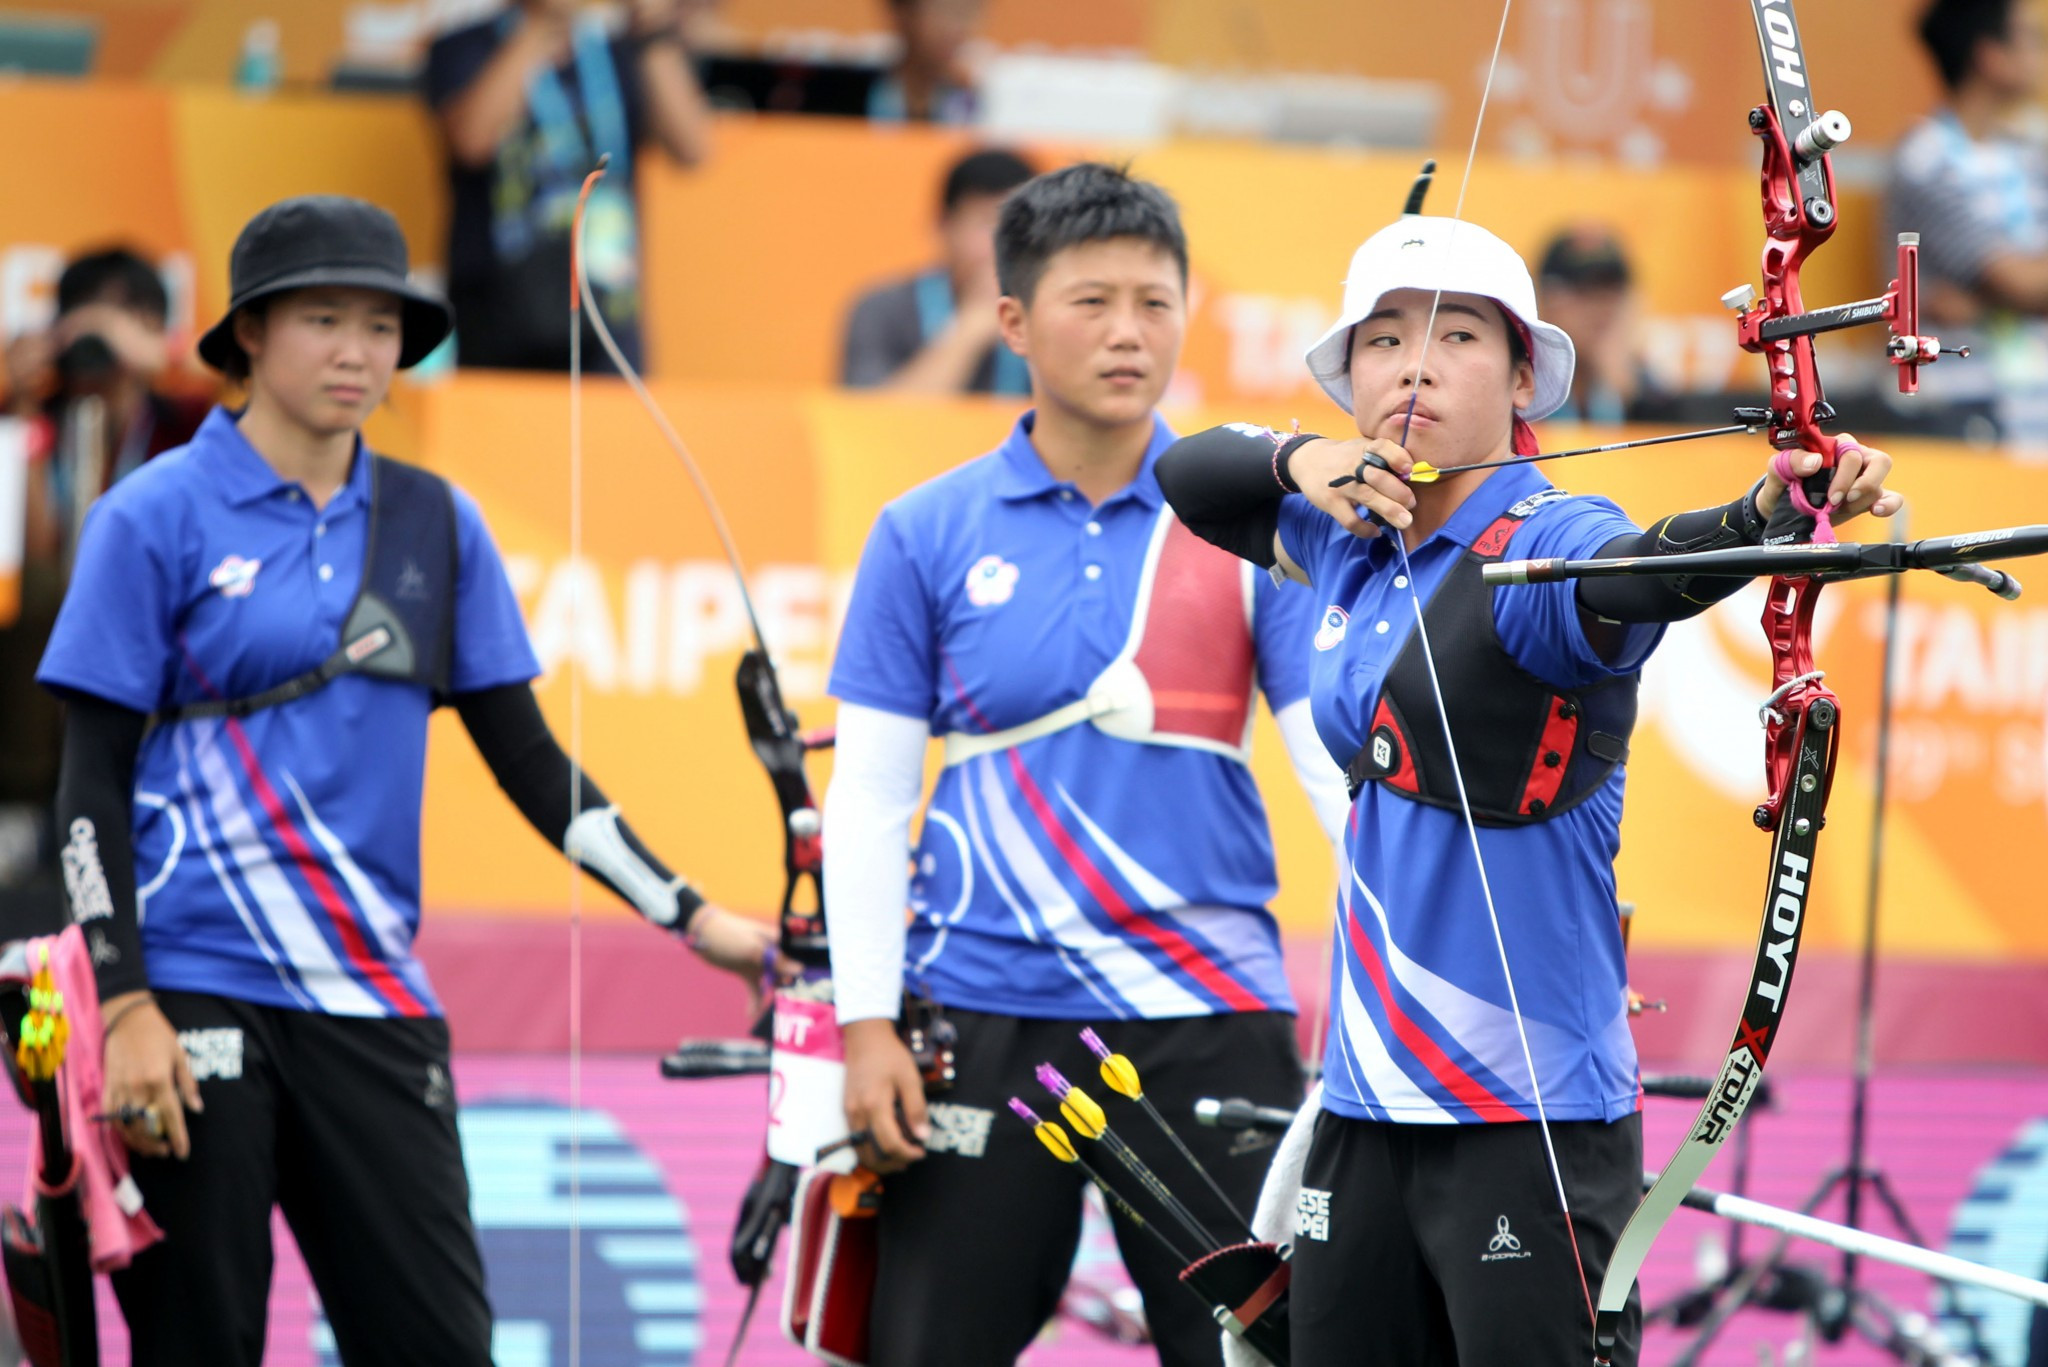 South Korea's recurve archers proved unbeatable in the gold medal matches ©Taipei 2017